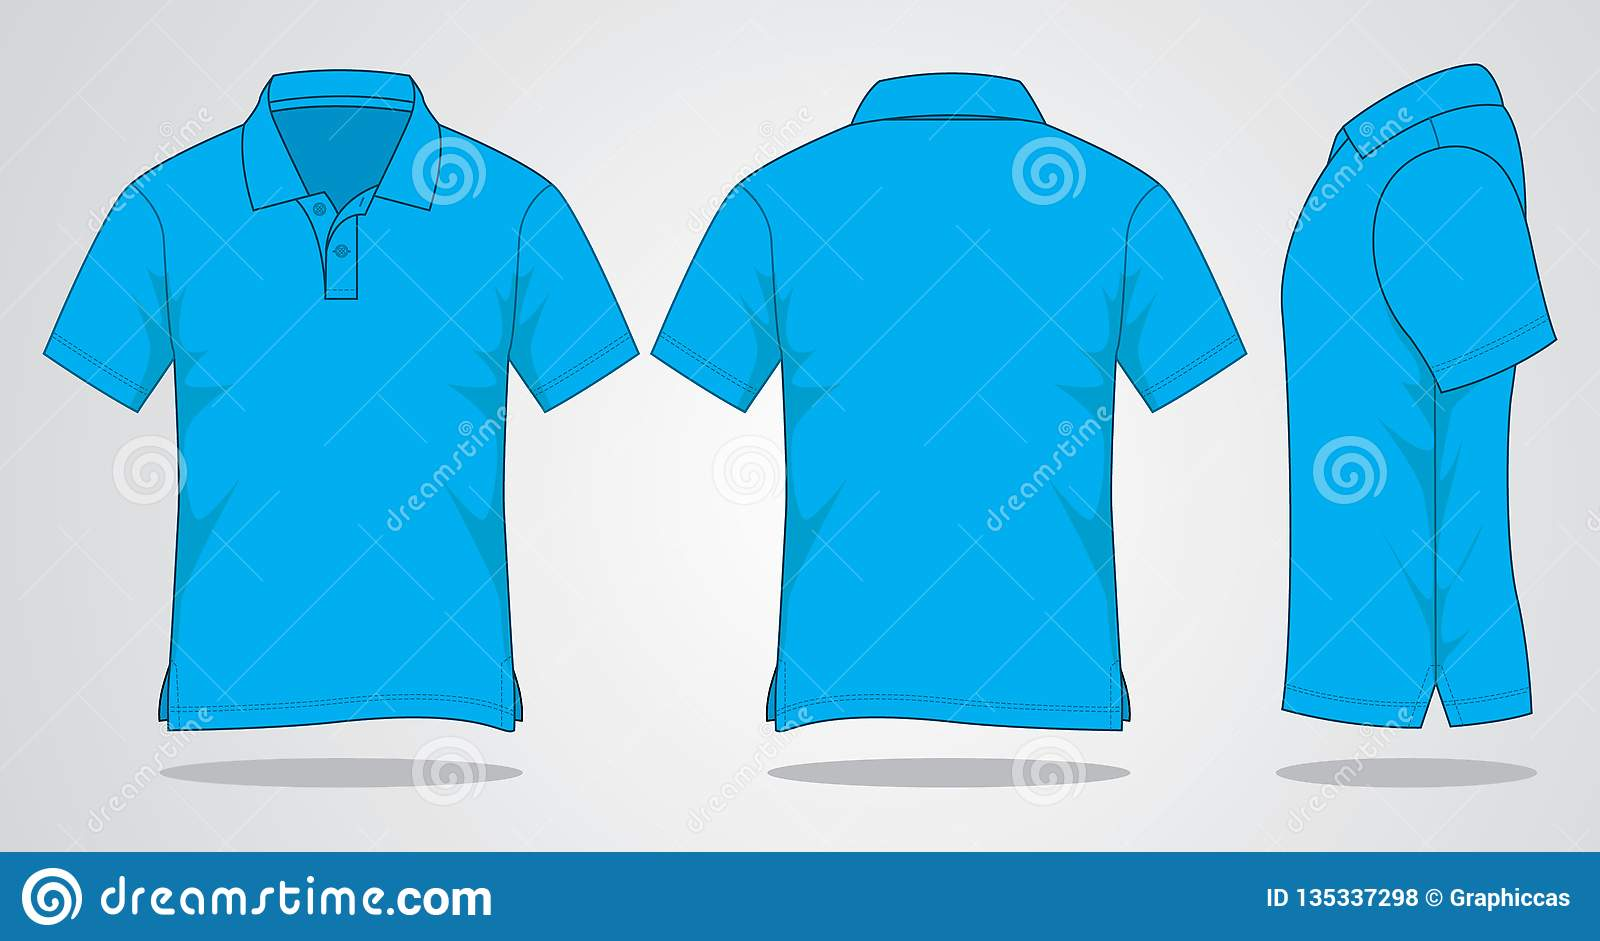 b5623d0c1 Front, Back and Side View - On White Background - Vector file - Garment -  Unisex - Sports - Cotton. More similar stock illustrations